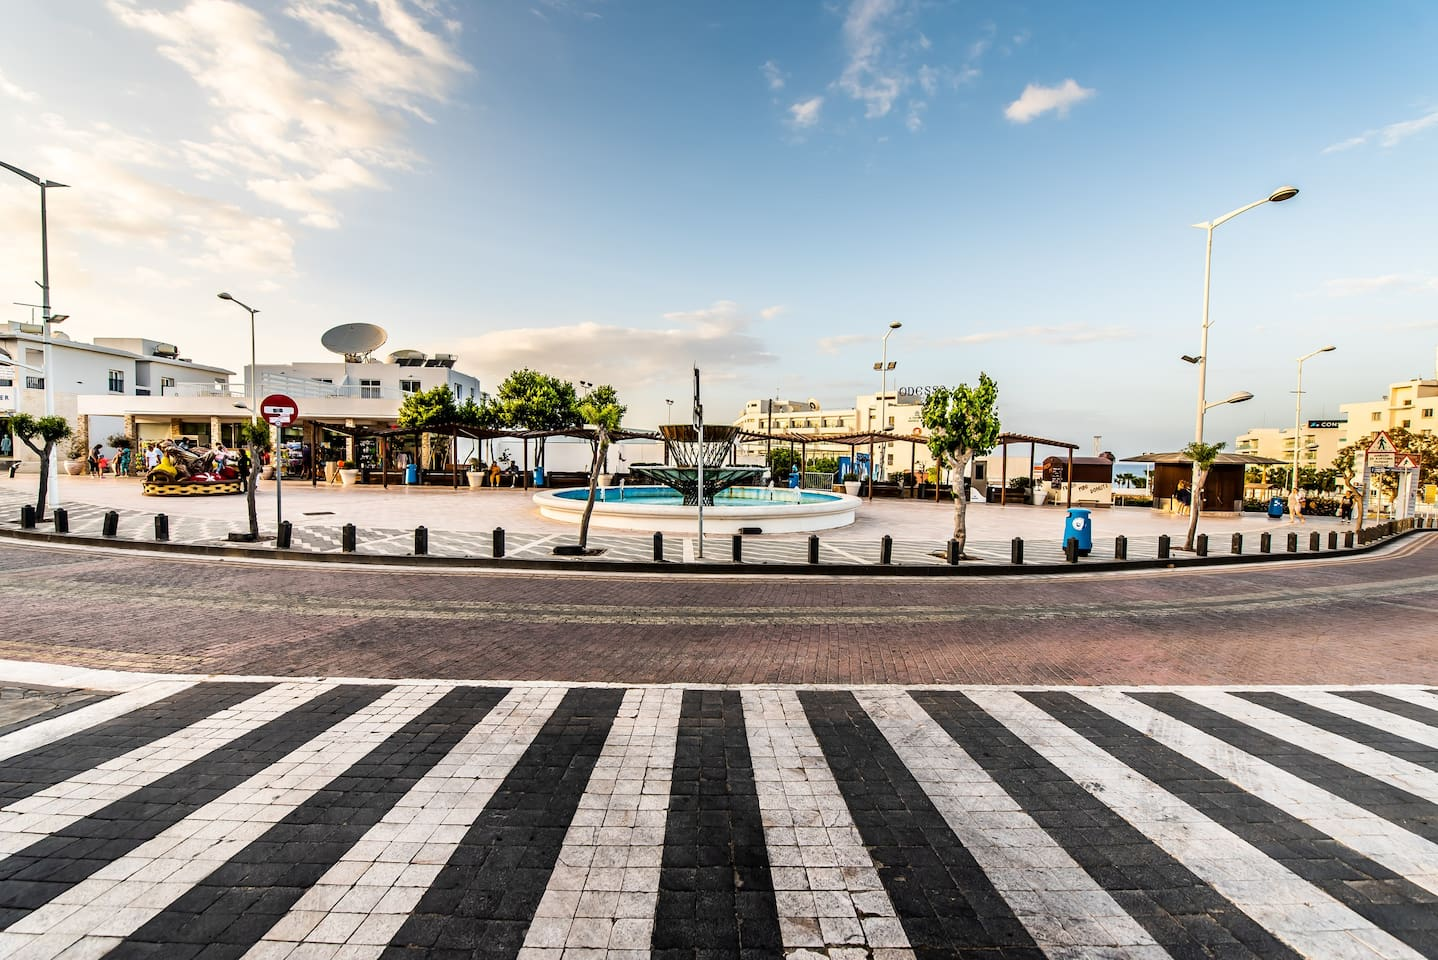 Lefkolla square in Protaras' centre. Only 50 metres away from the apartment!